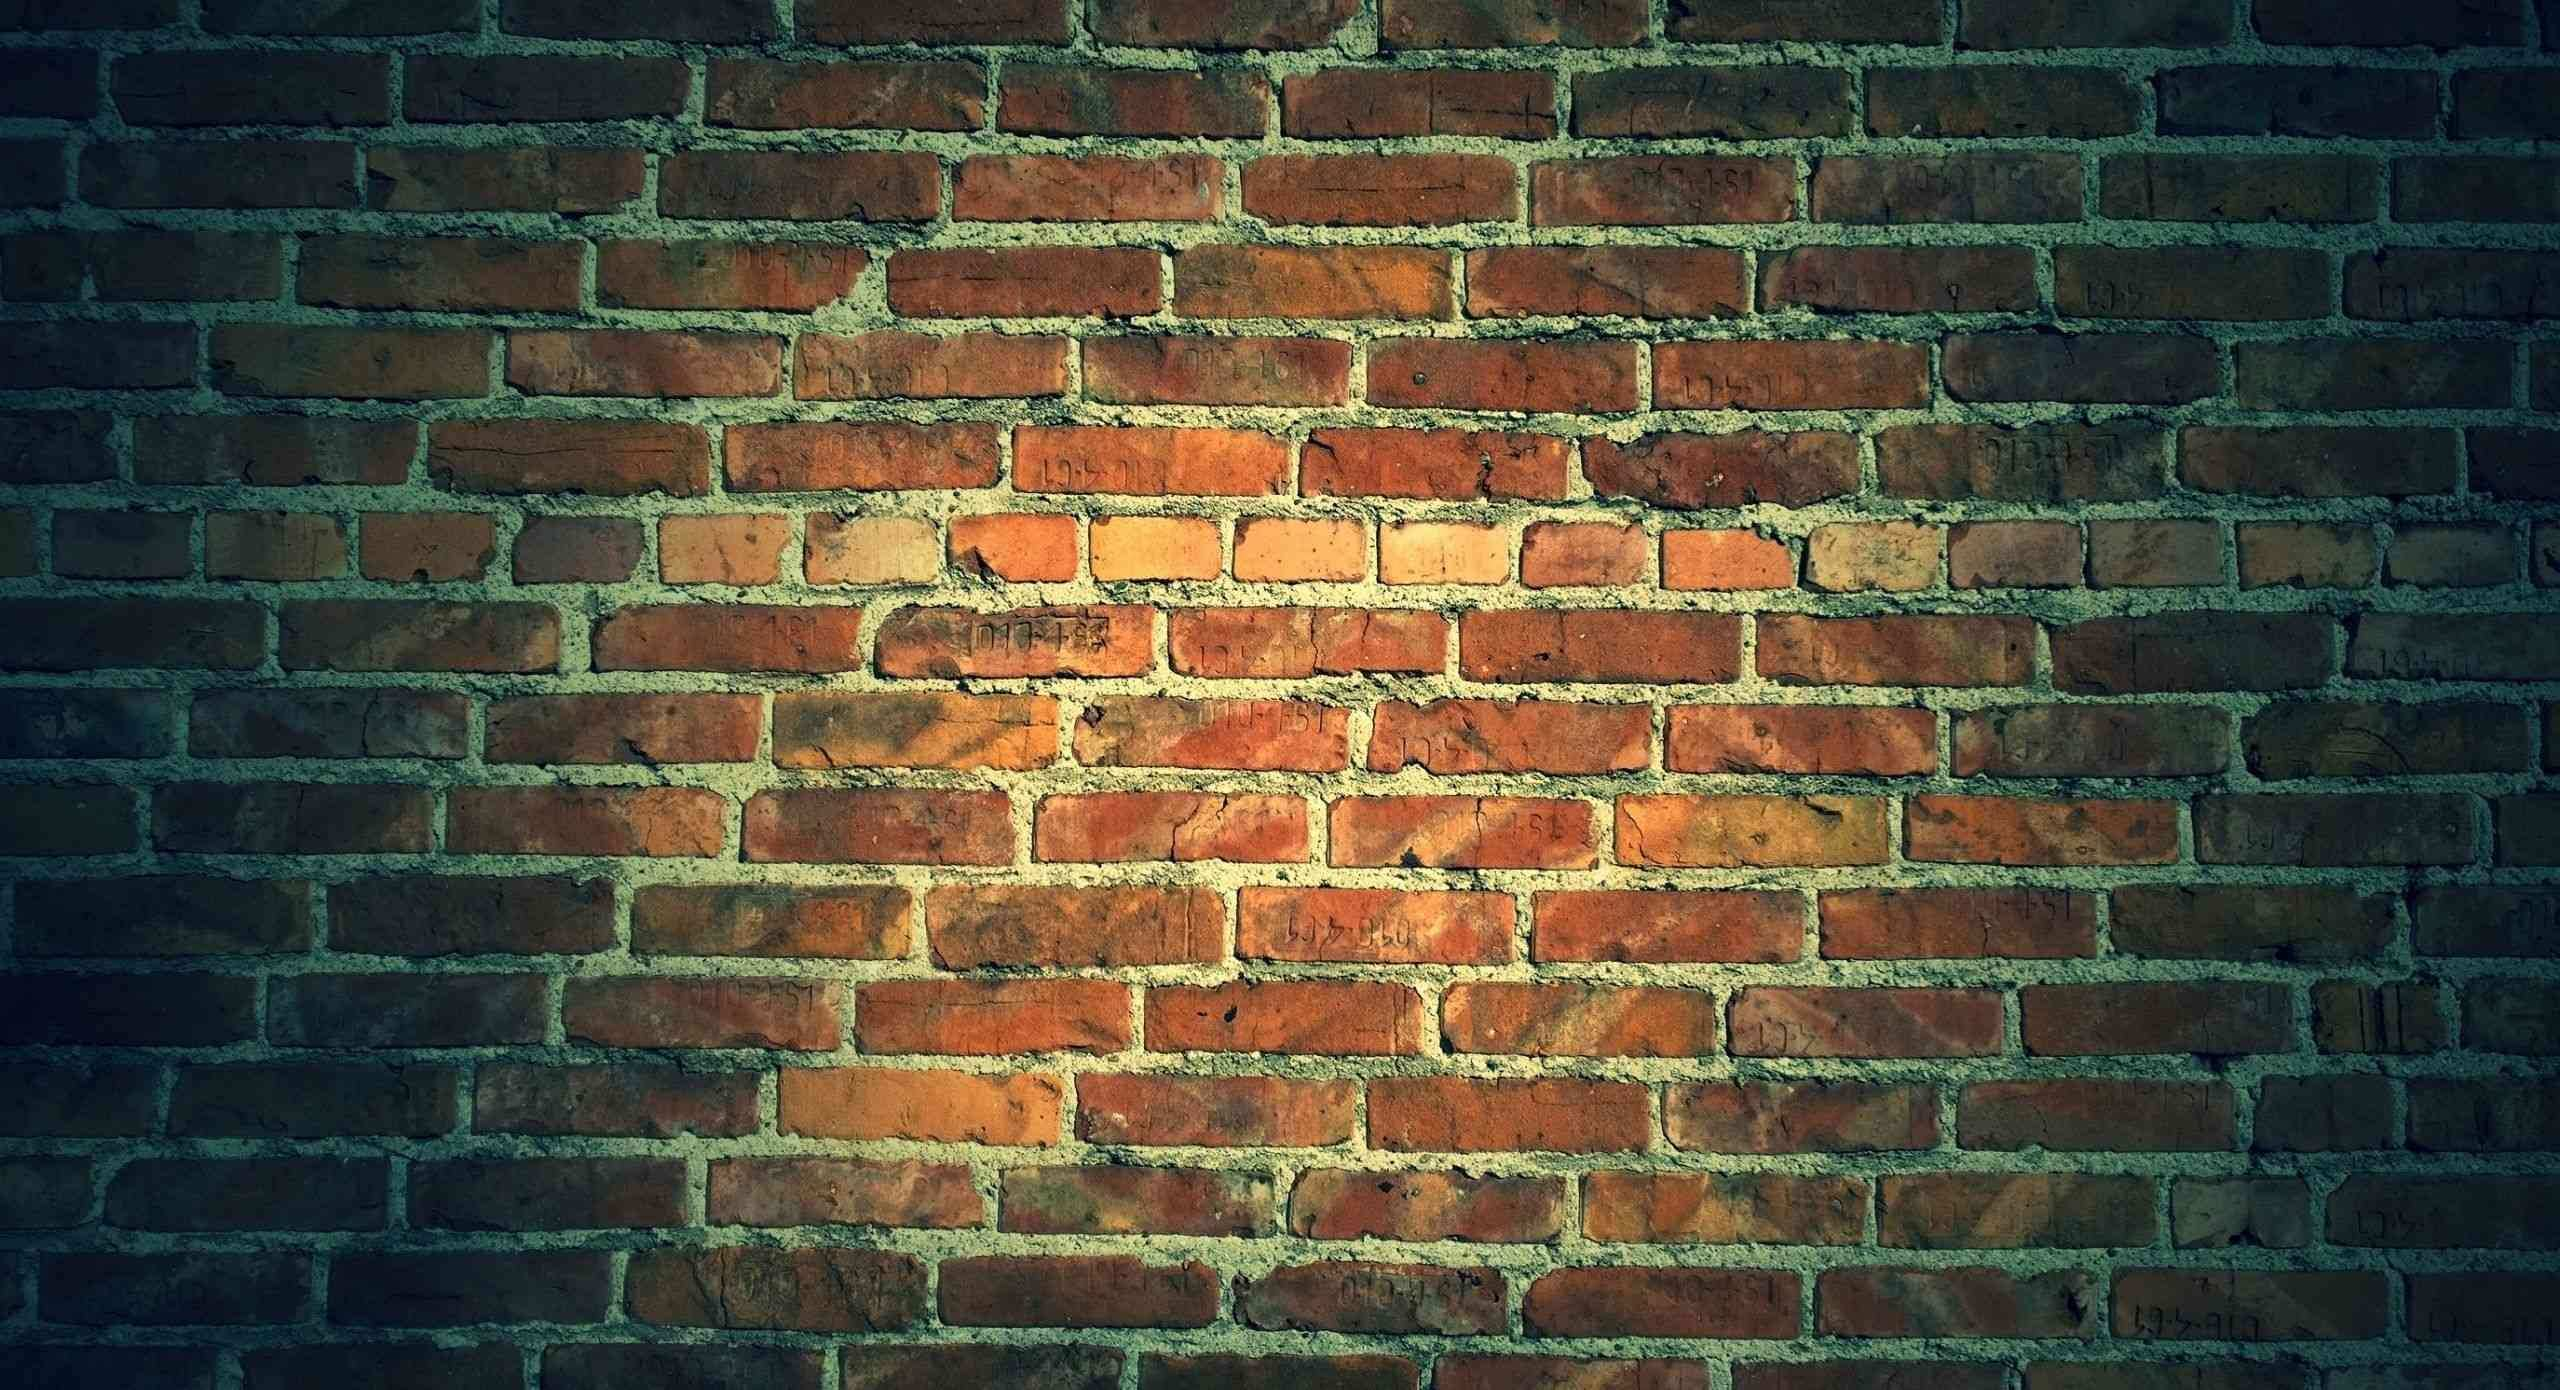 An Exposed Brick Wall is Trendy and A Feature Rustic Style for